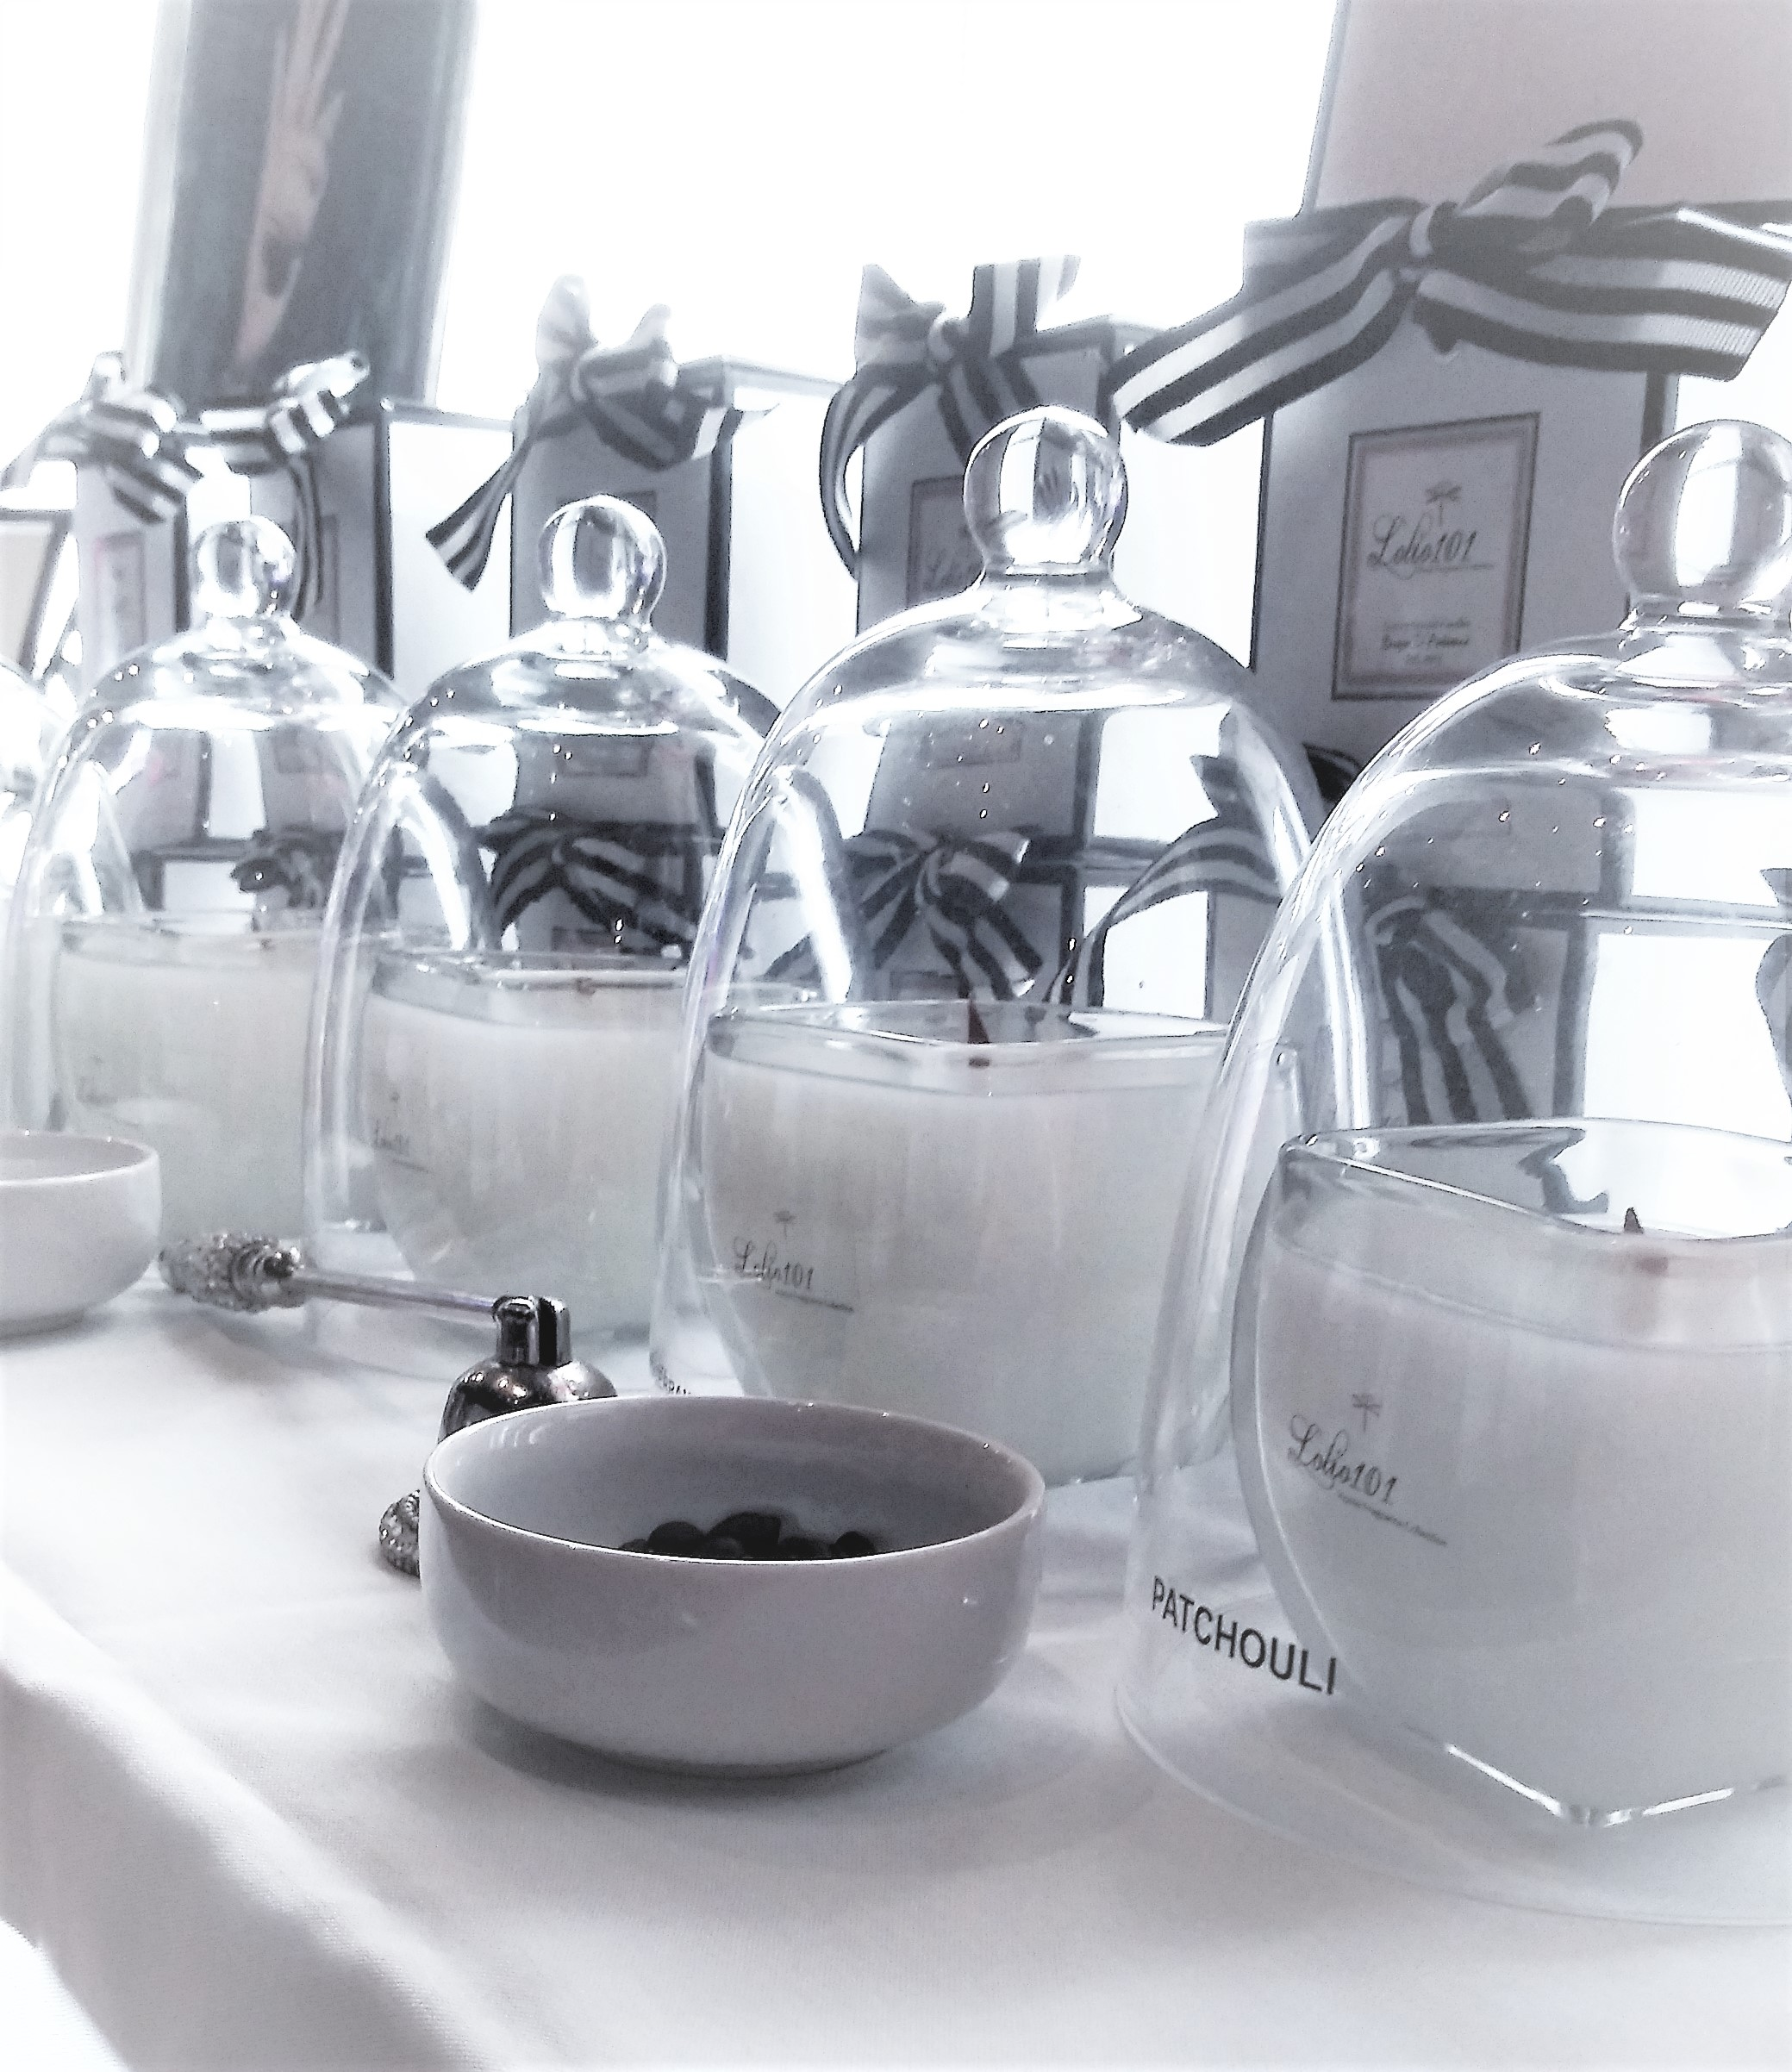 Lolio101 #Patchouli #ScentedCandles glass domes cloches luxury gifts black and white stripped ribbon